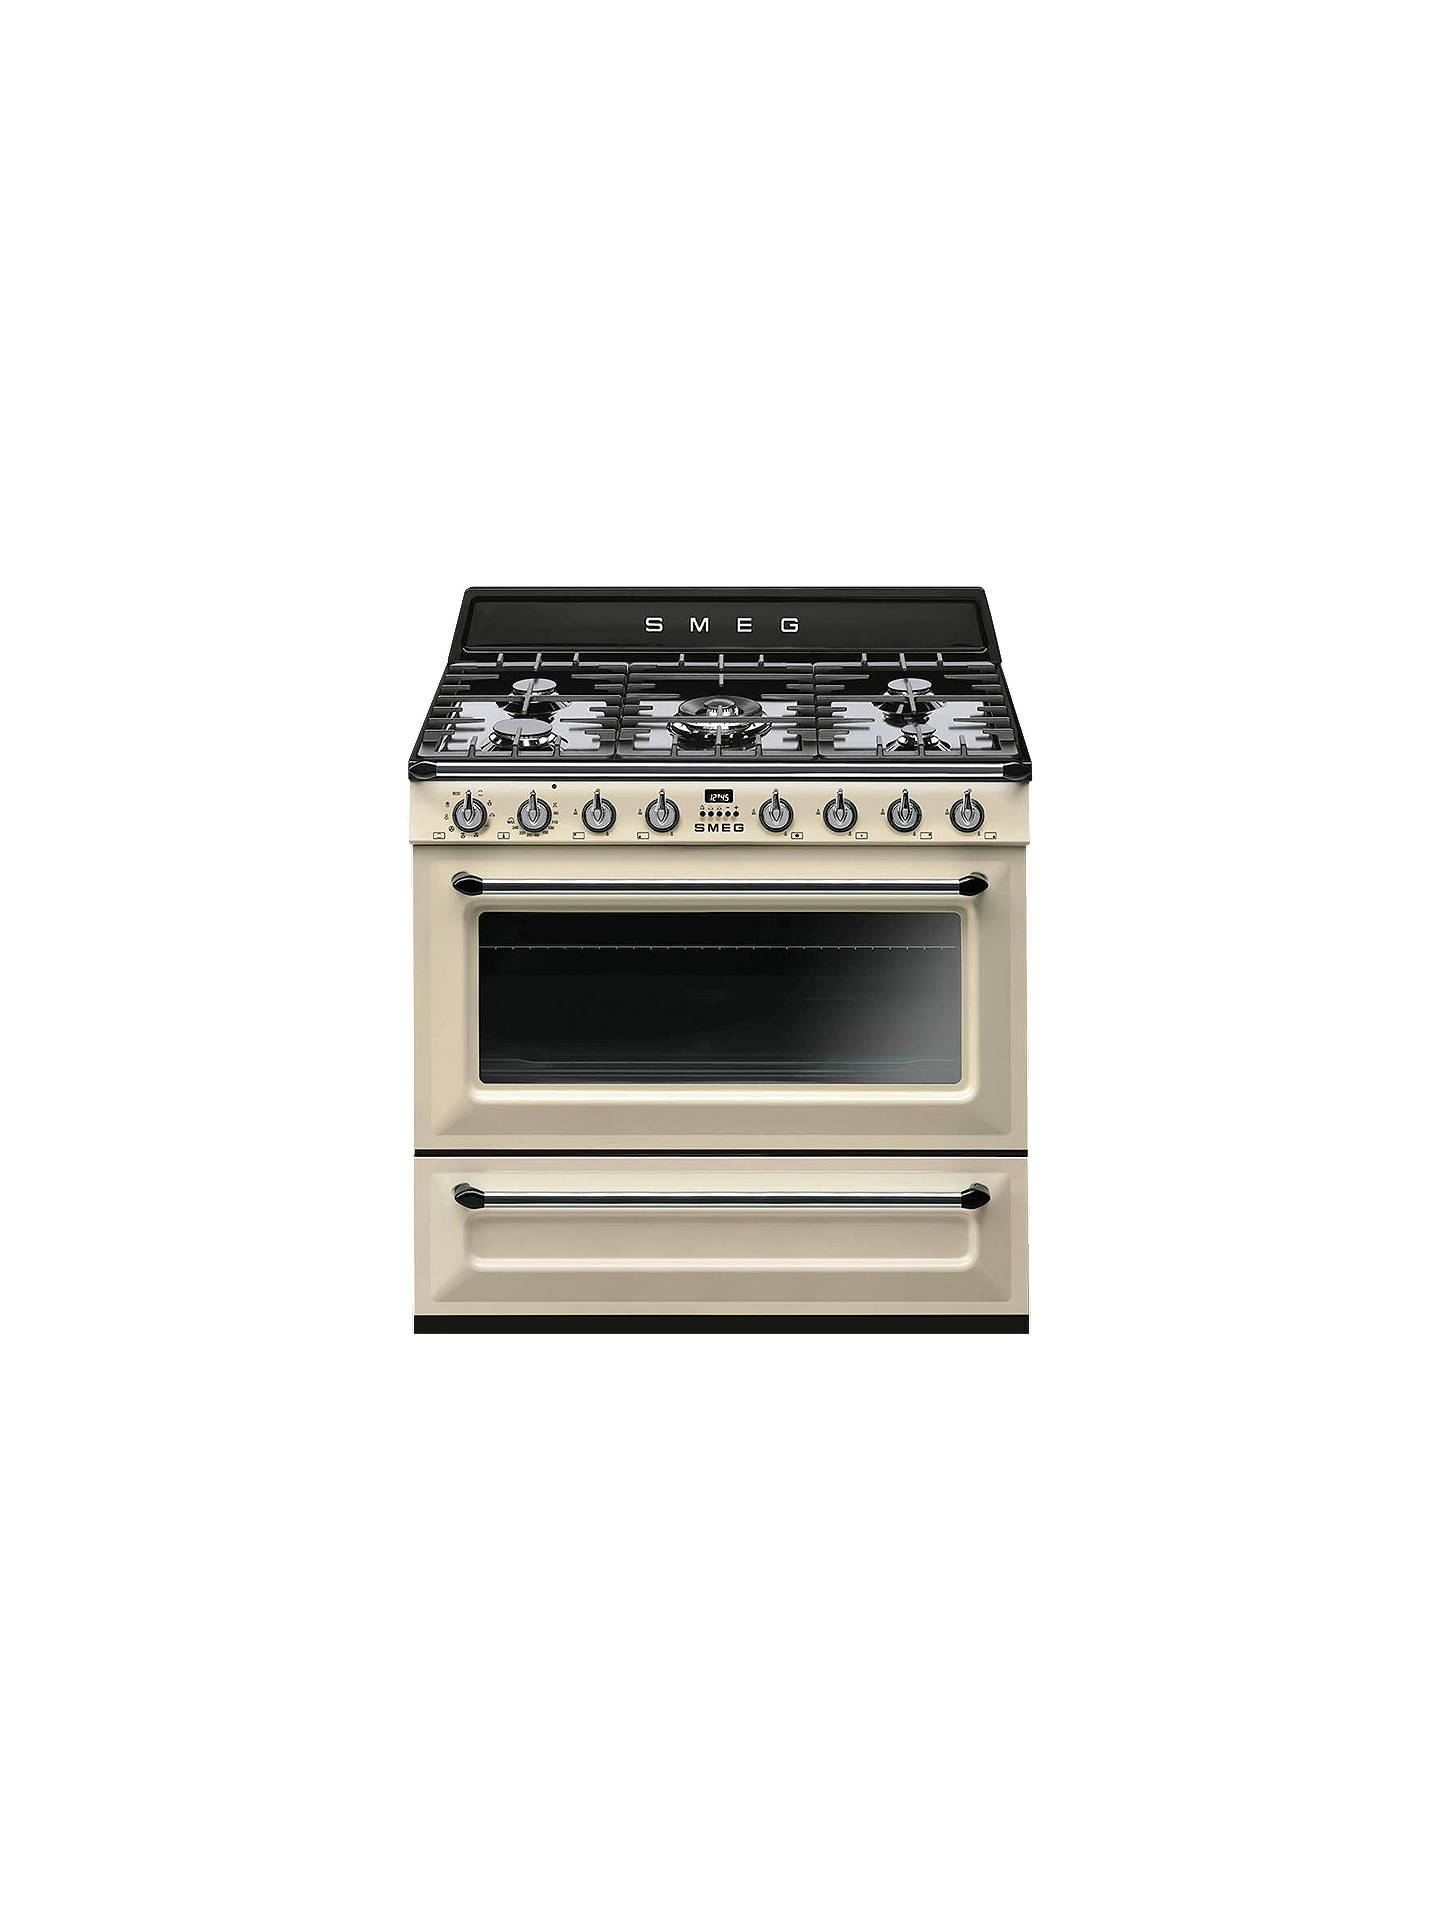 BuySmeg TR90P9 Dual Fuel Range Cooker, Cream Online at johnlewis.com